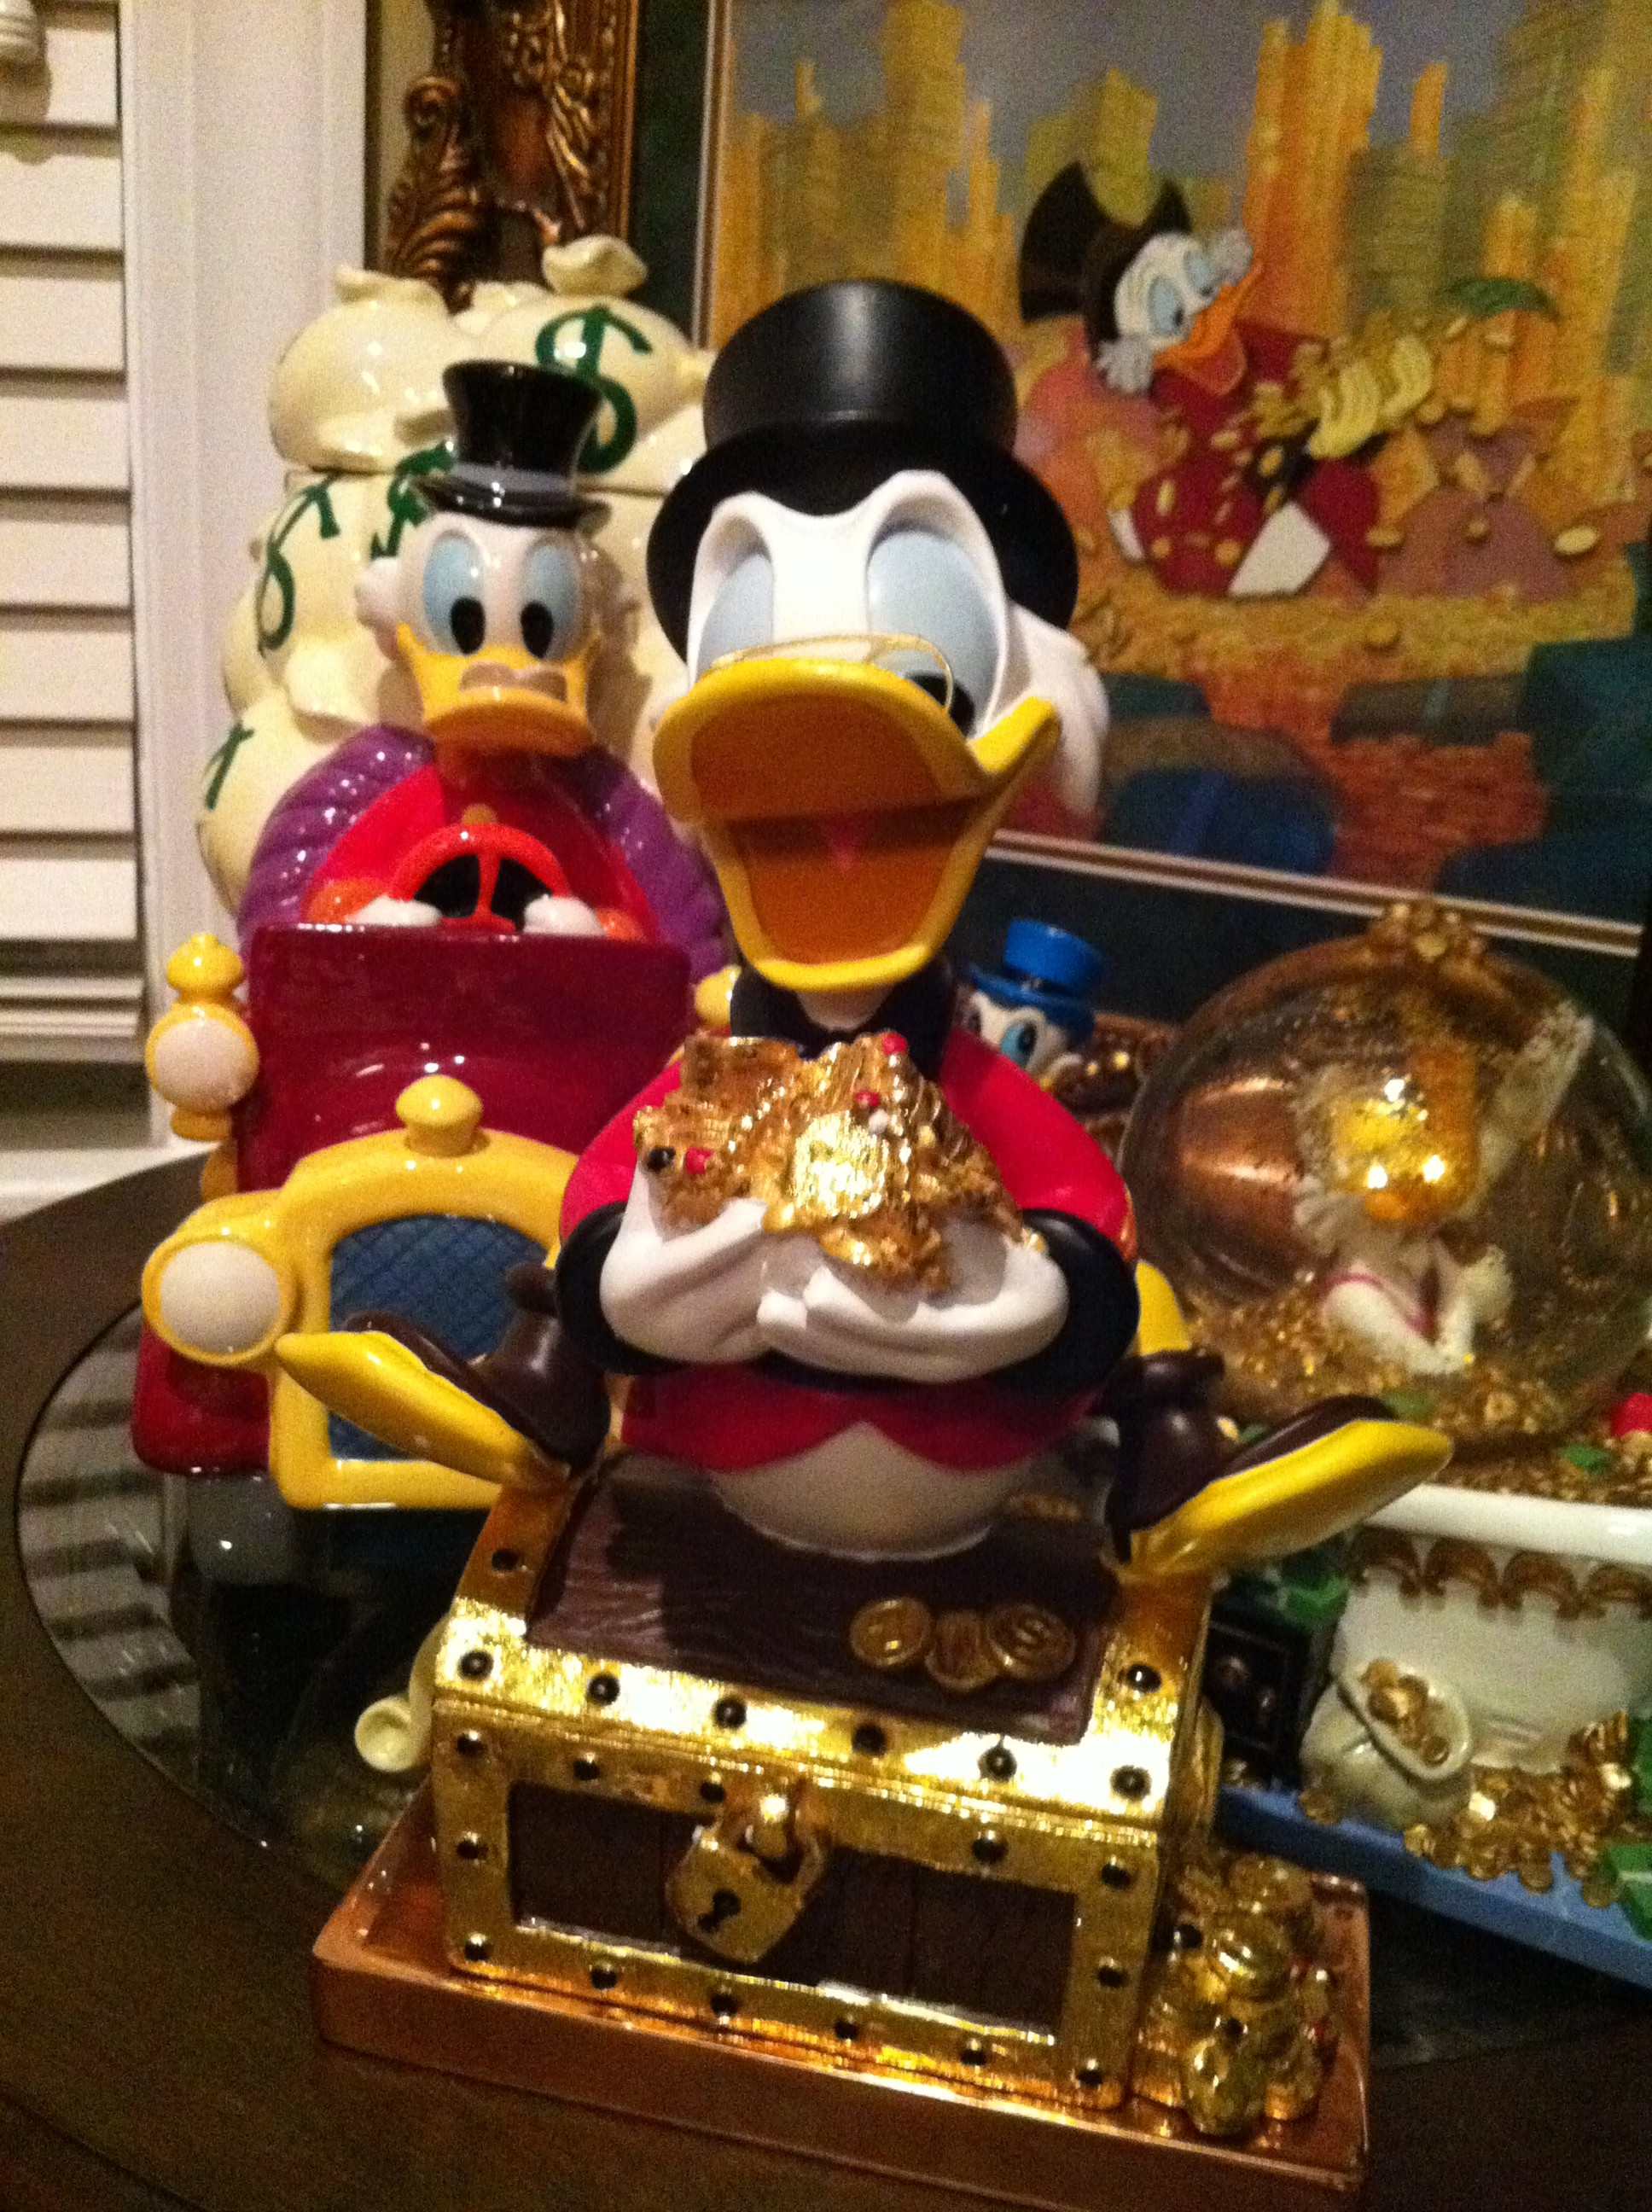 Scrooge McDuck Figuring for the Office Collectibles Collection